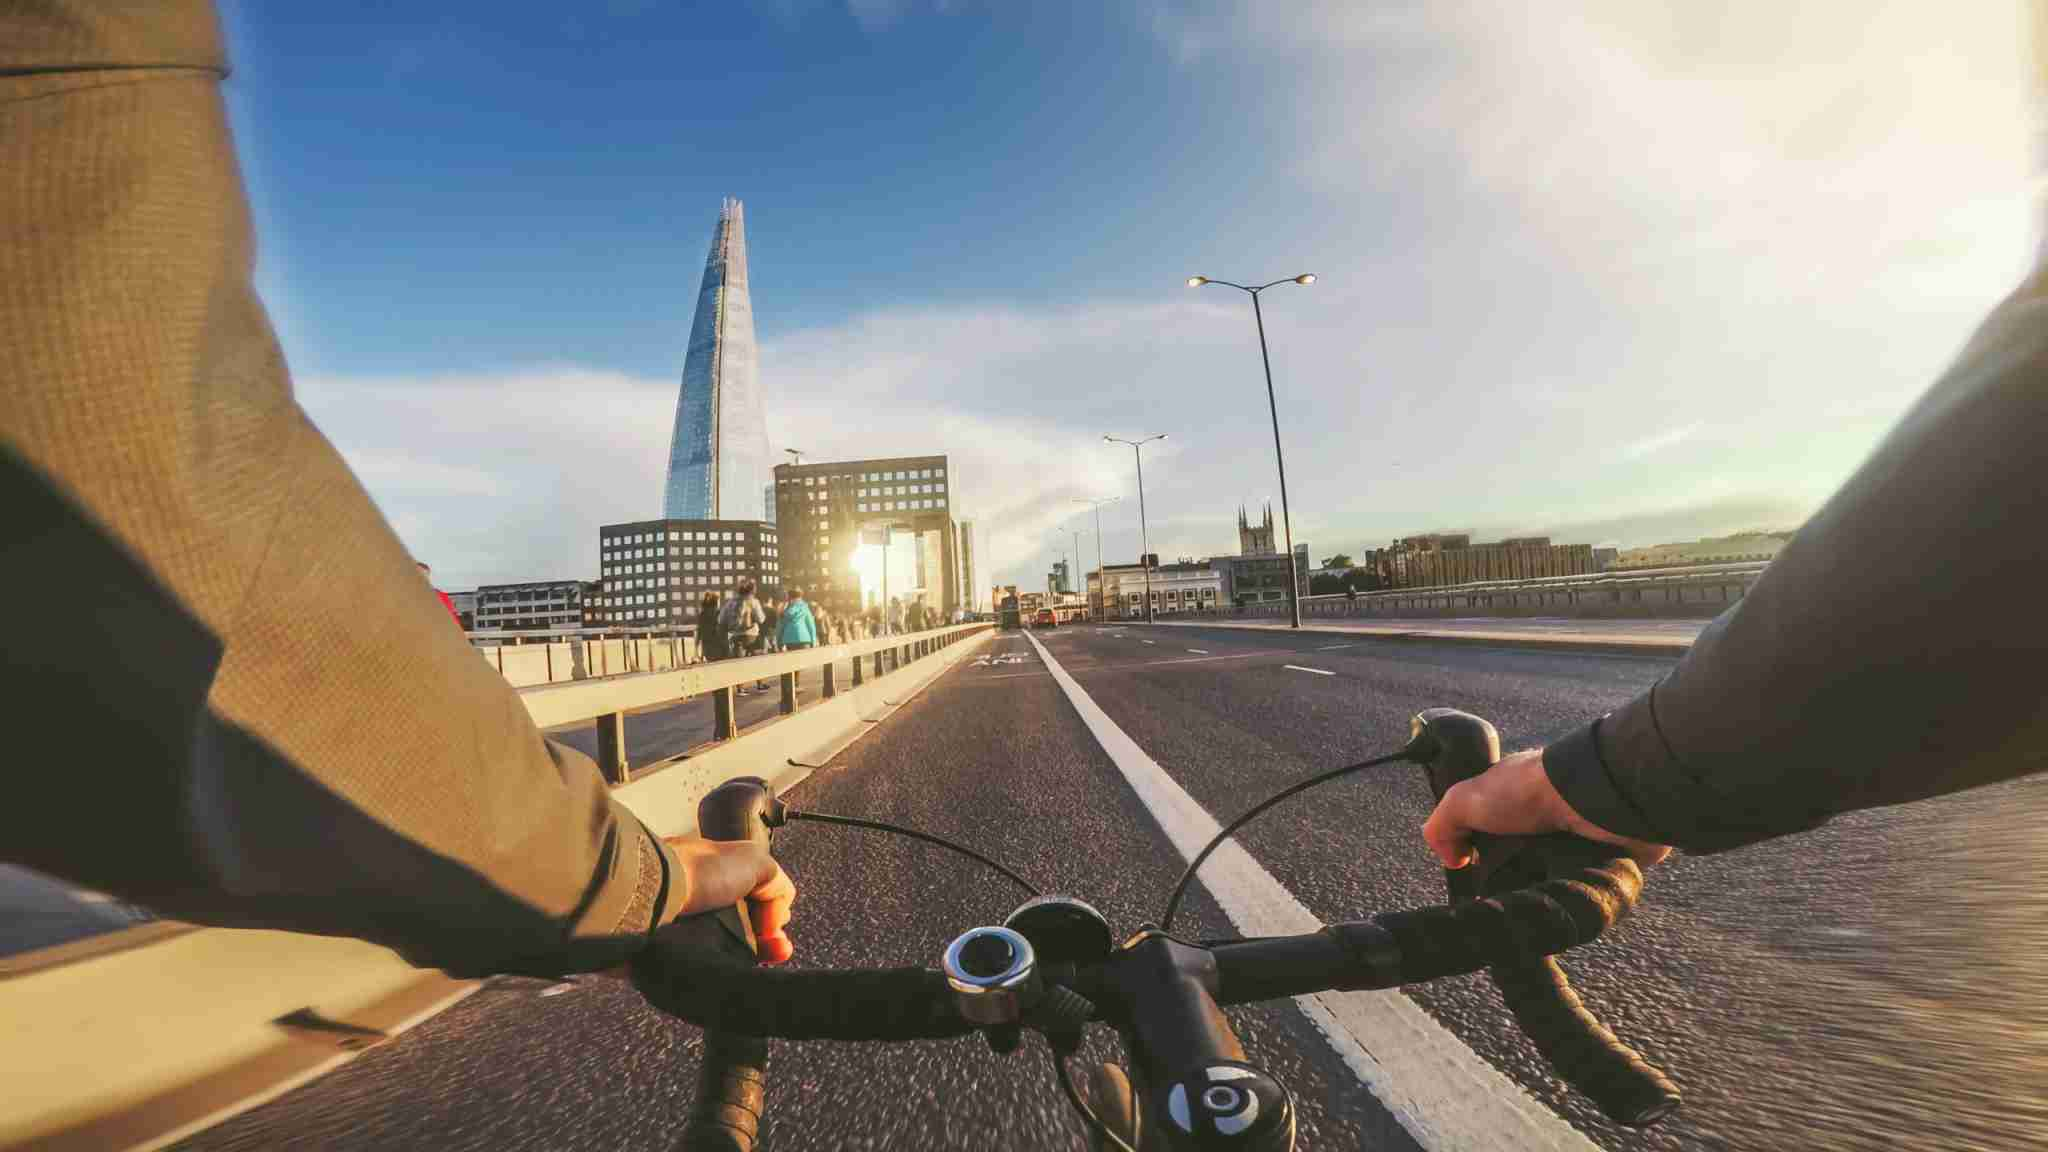 Bicycle riding in London. Photo by piola666 / Getty Images